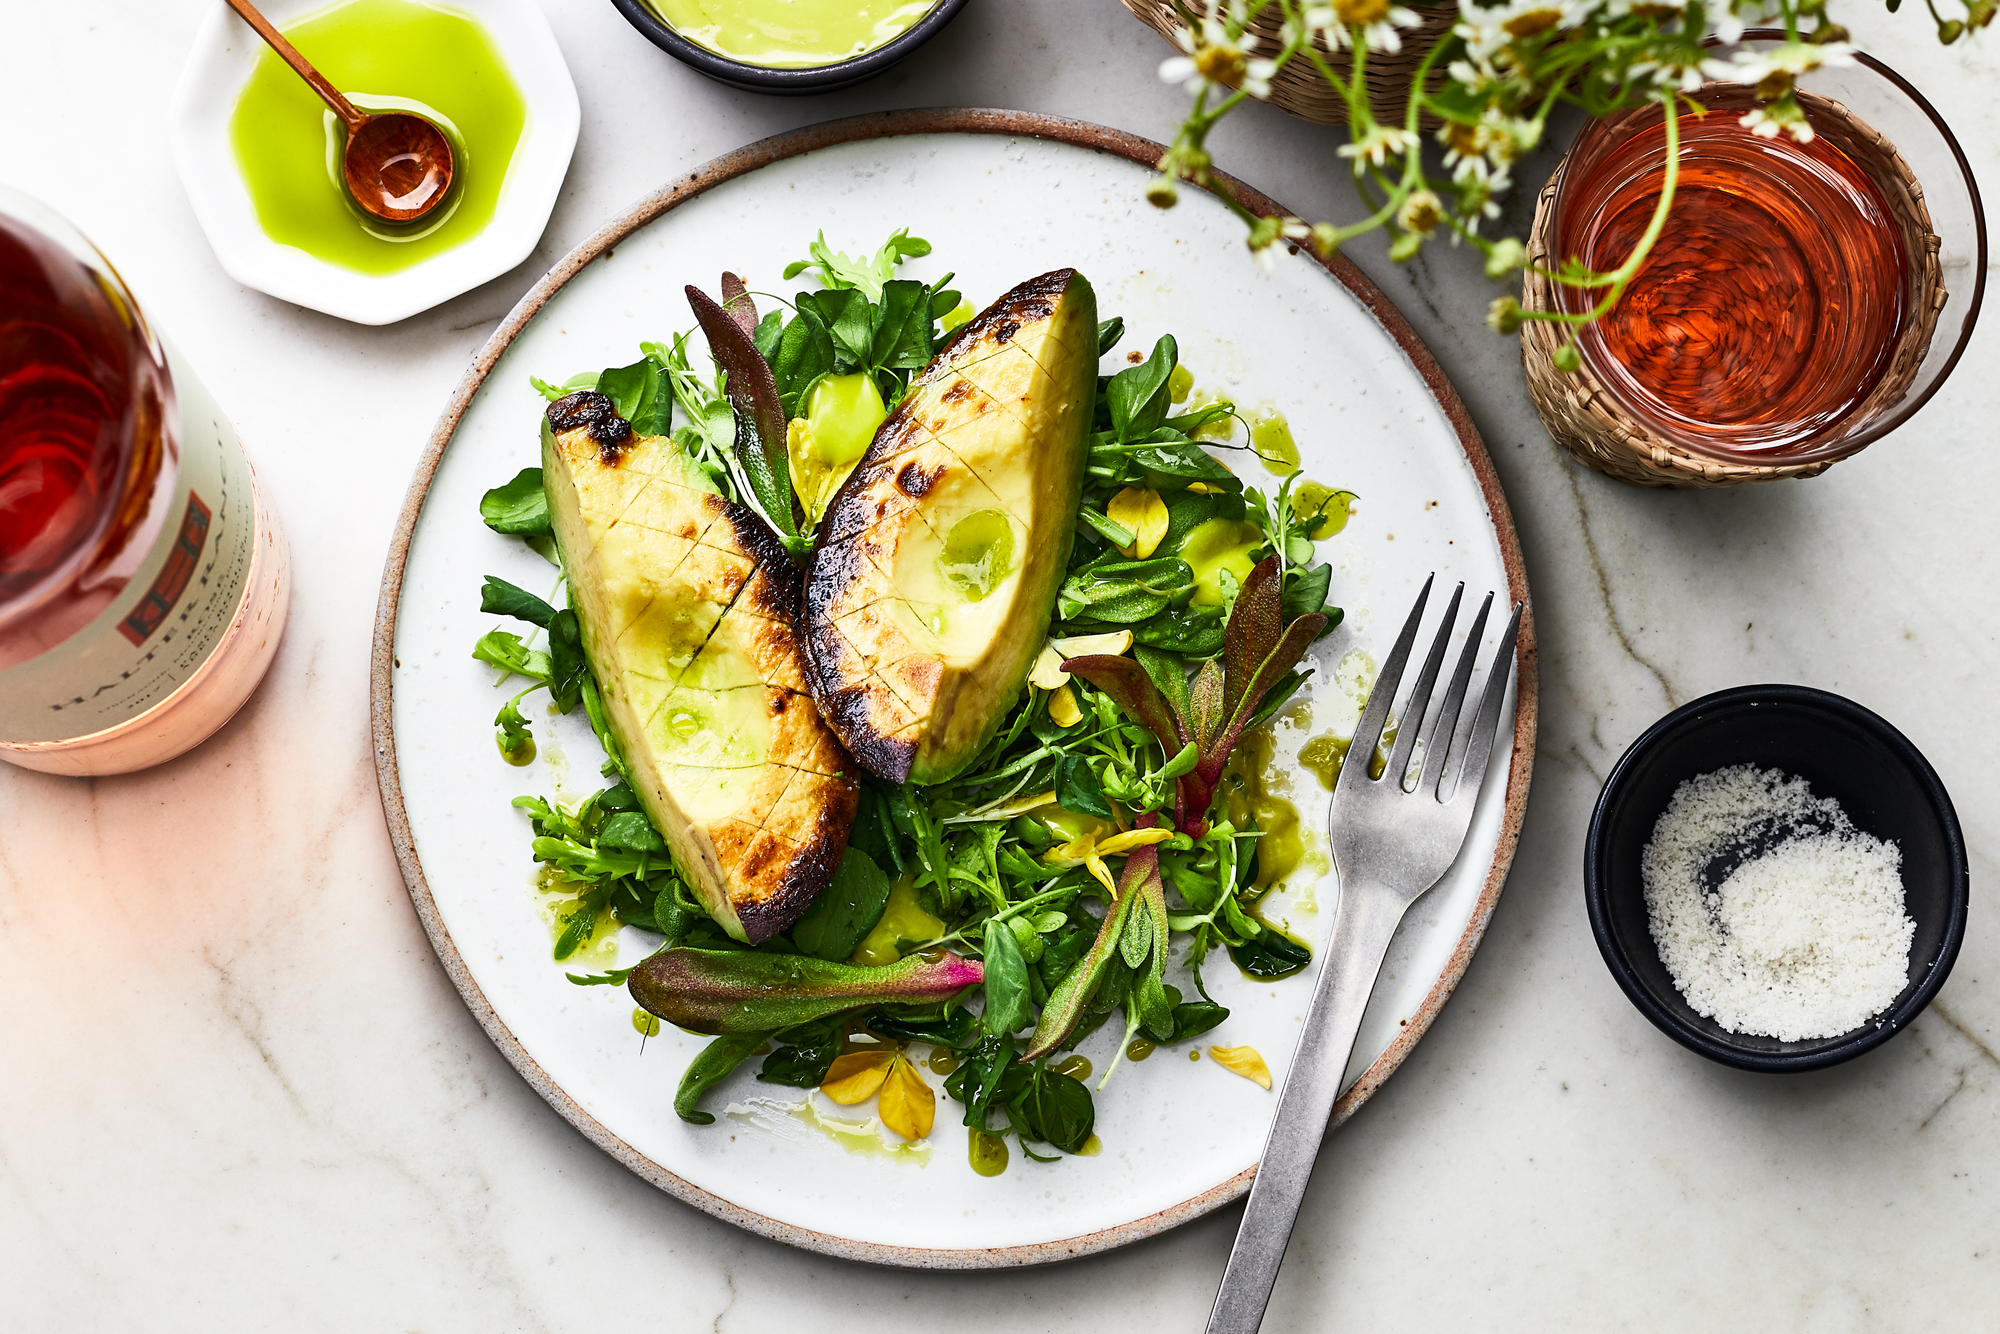 Charred Avocado Salad with Cilantro Mayo Recipe